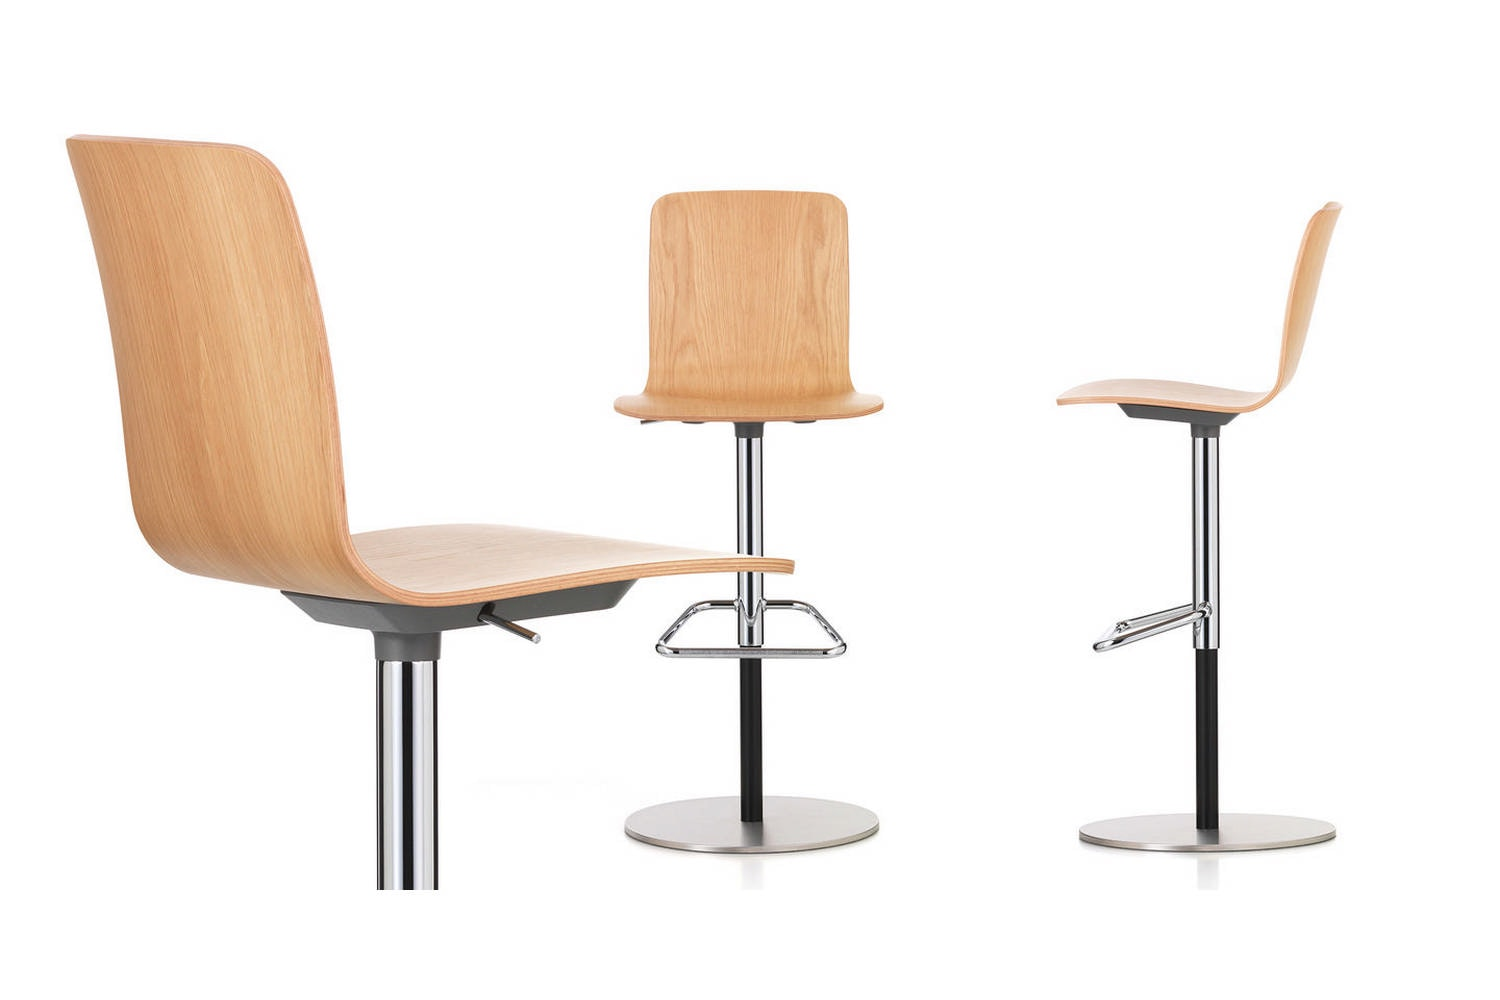 HAL Ply Barstool by Jasper Morrison for Vitra